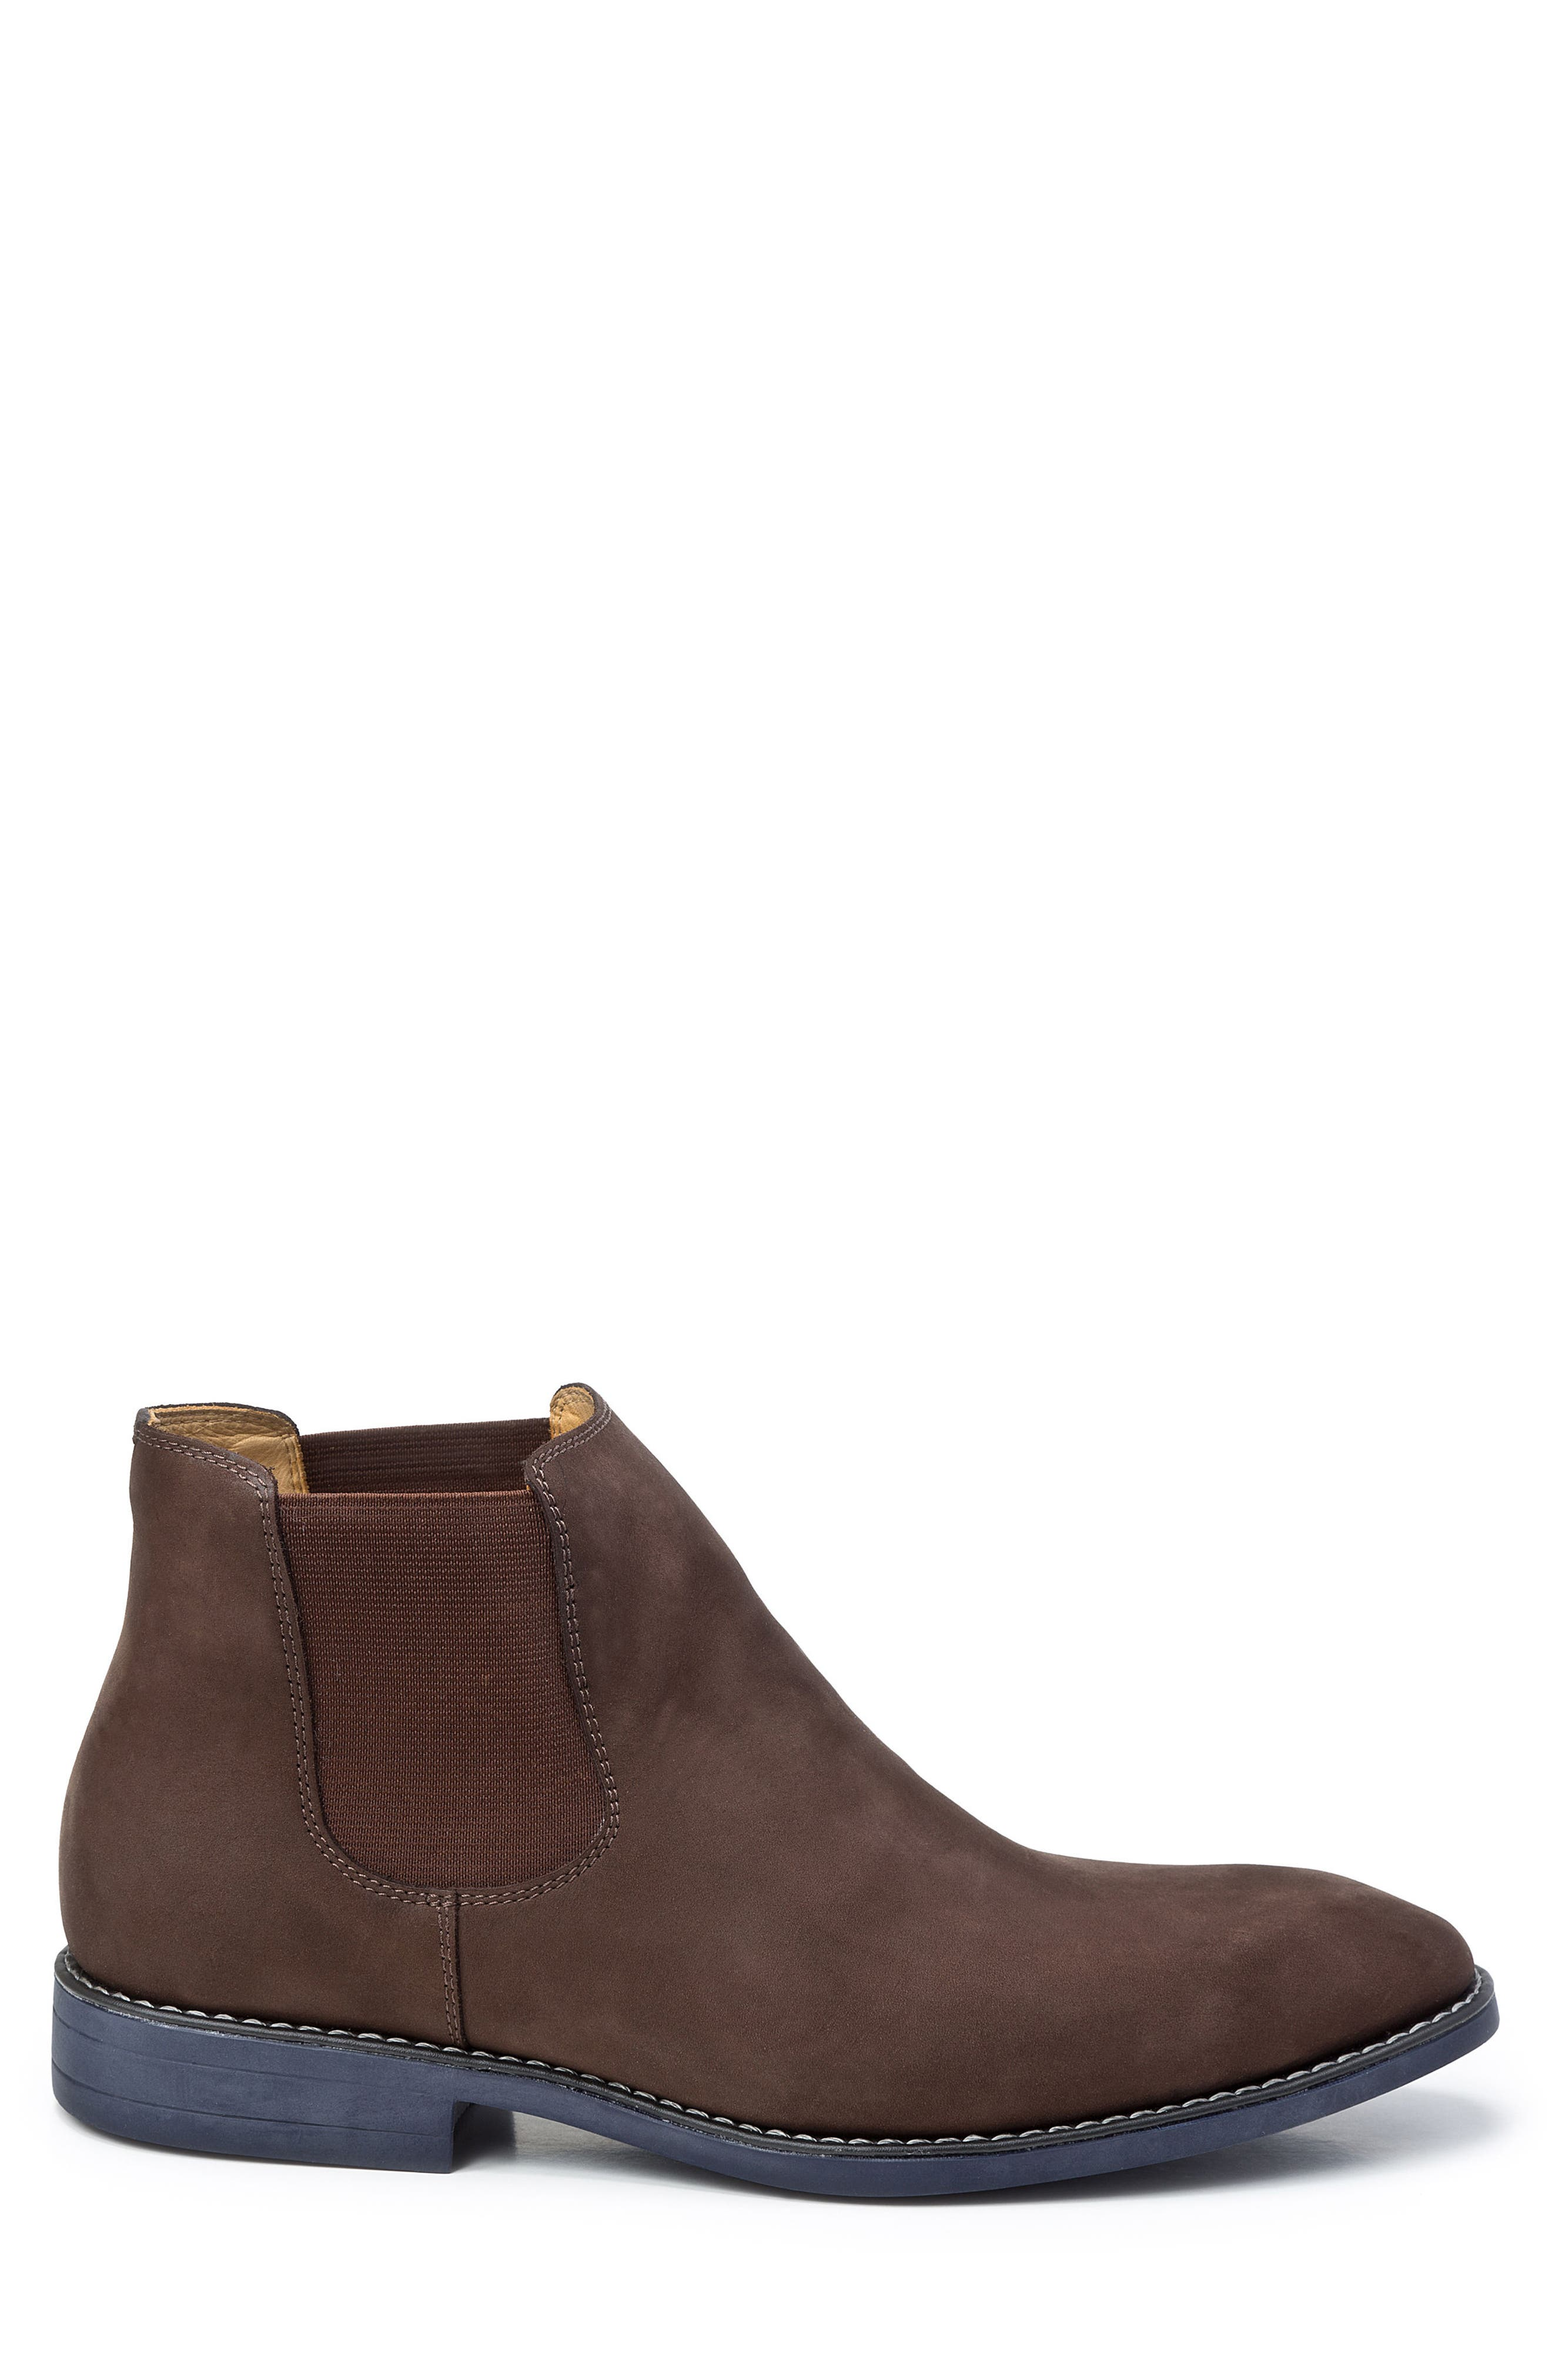 Marcus Chelsea Boot,                             Alternate thumbnail 3, color,                             Brown Nubuck Leather